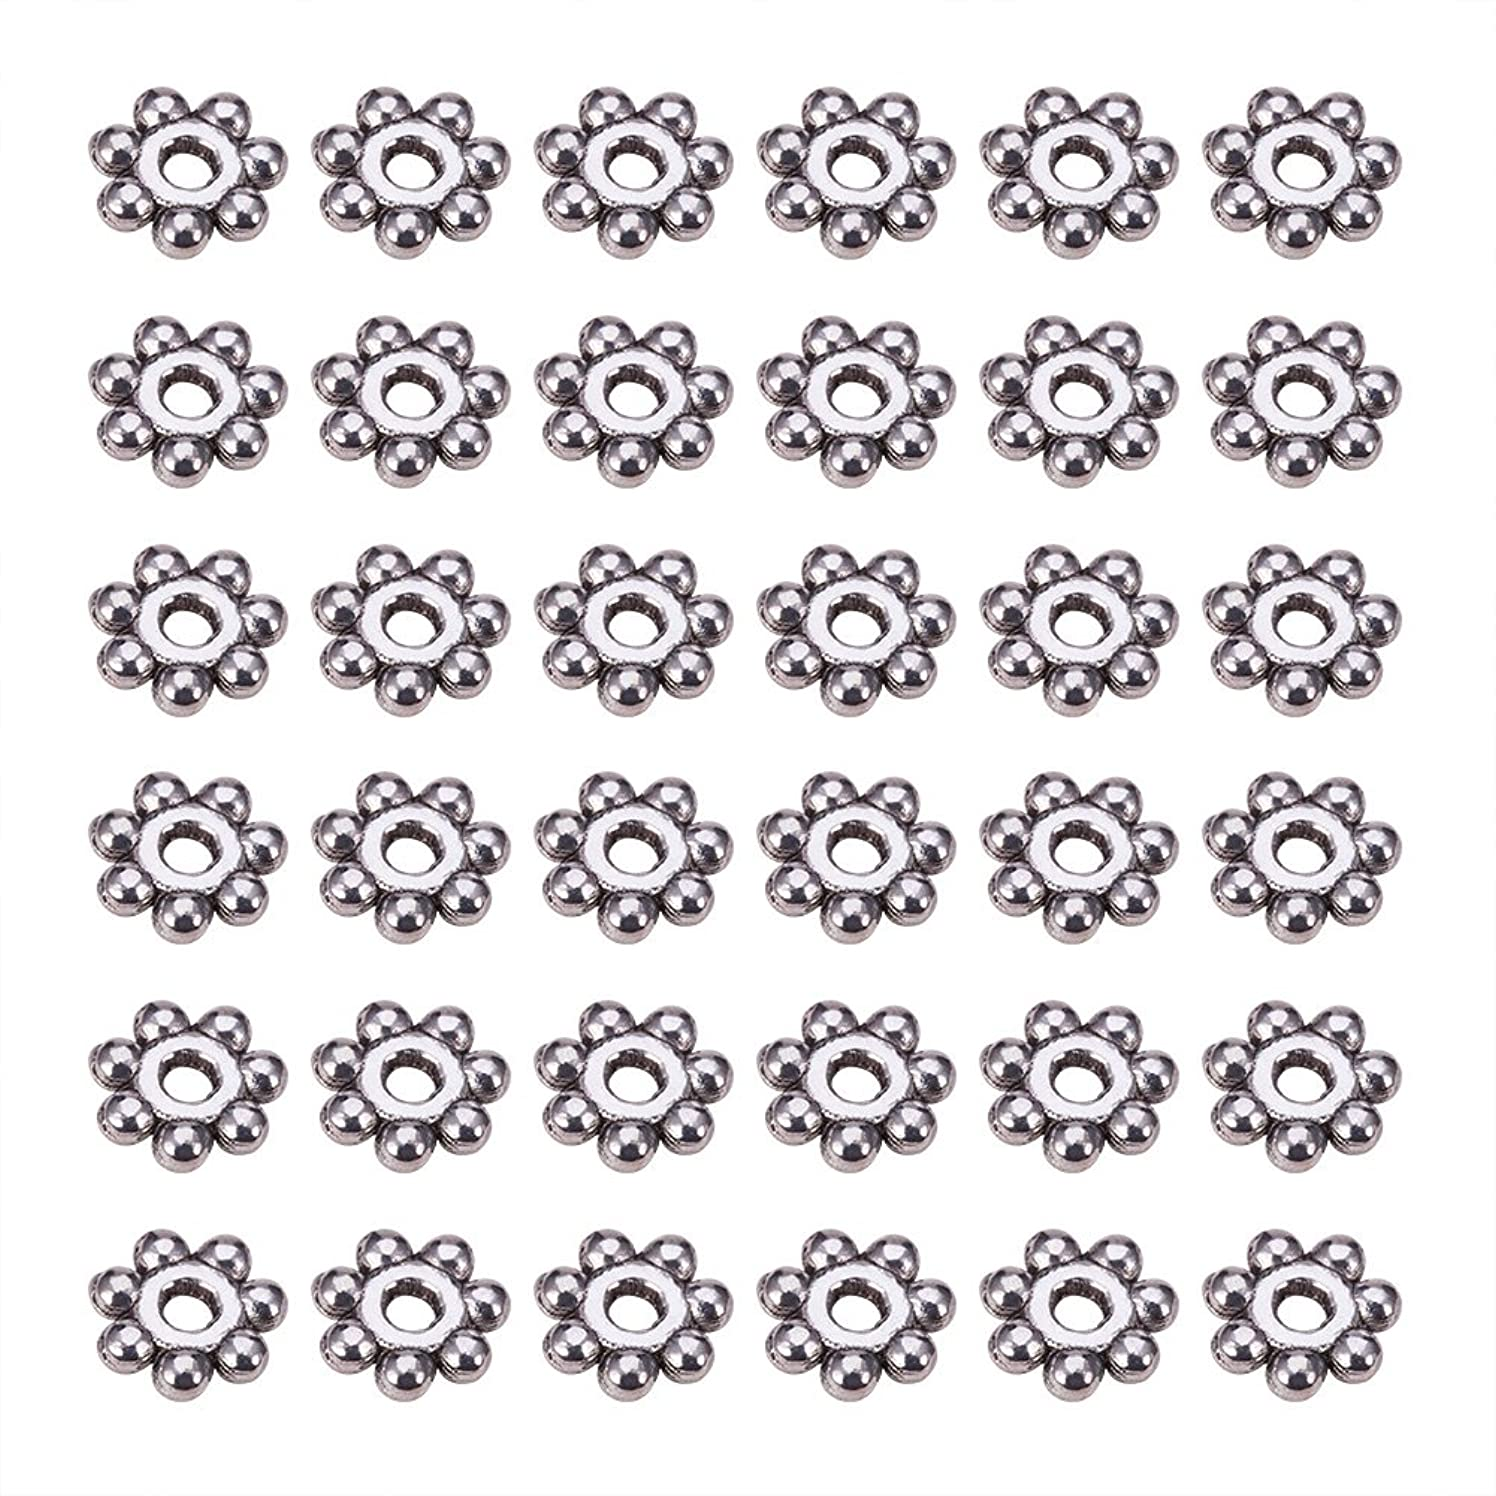 Pandahall 200pcs Antique Silver Tone Retro Style Christmas Snowflake Daisy Spacer Beads for Bracelets DIY jewelry Making, Lead Free Cadmium Free & Nickel Free, about 4mm in diameter, 1.5mm thick, hole: 1mm